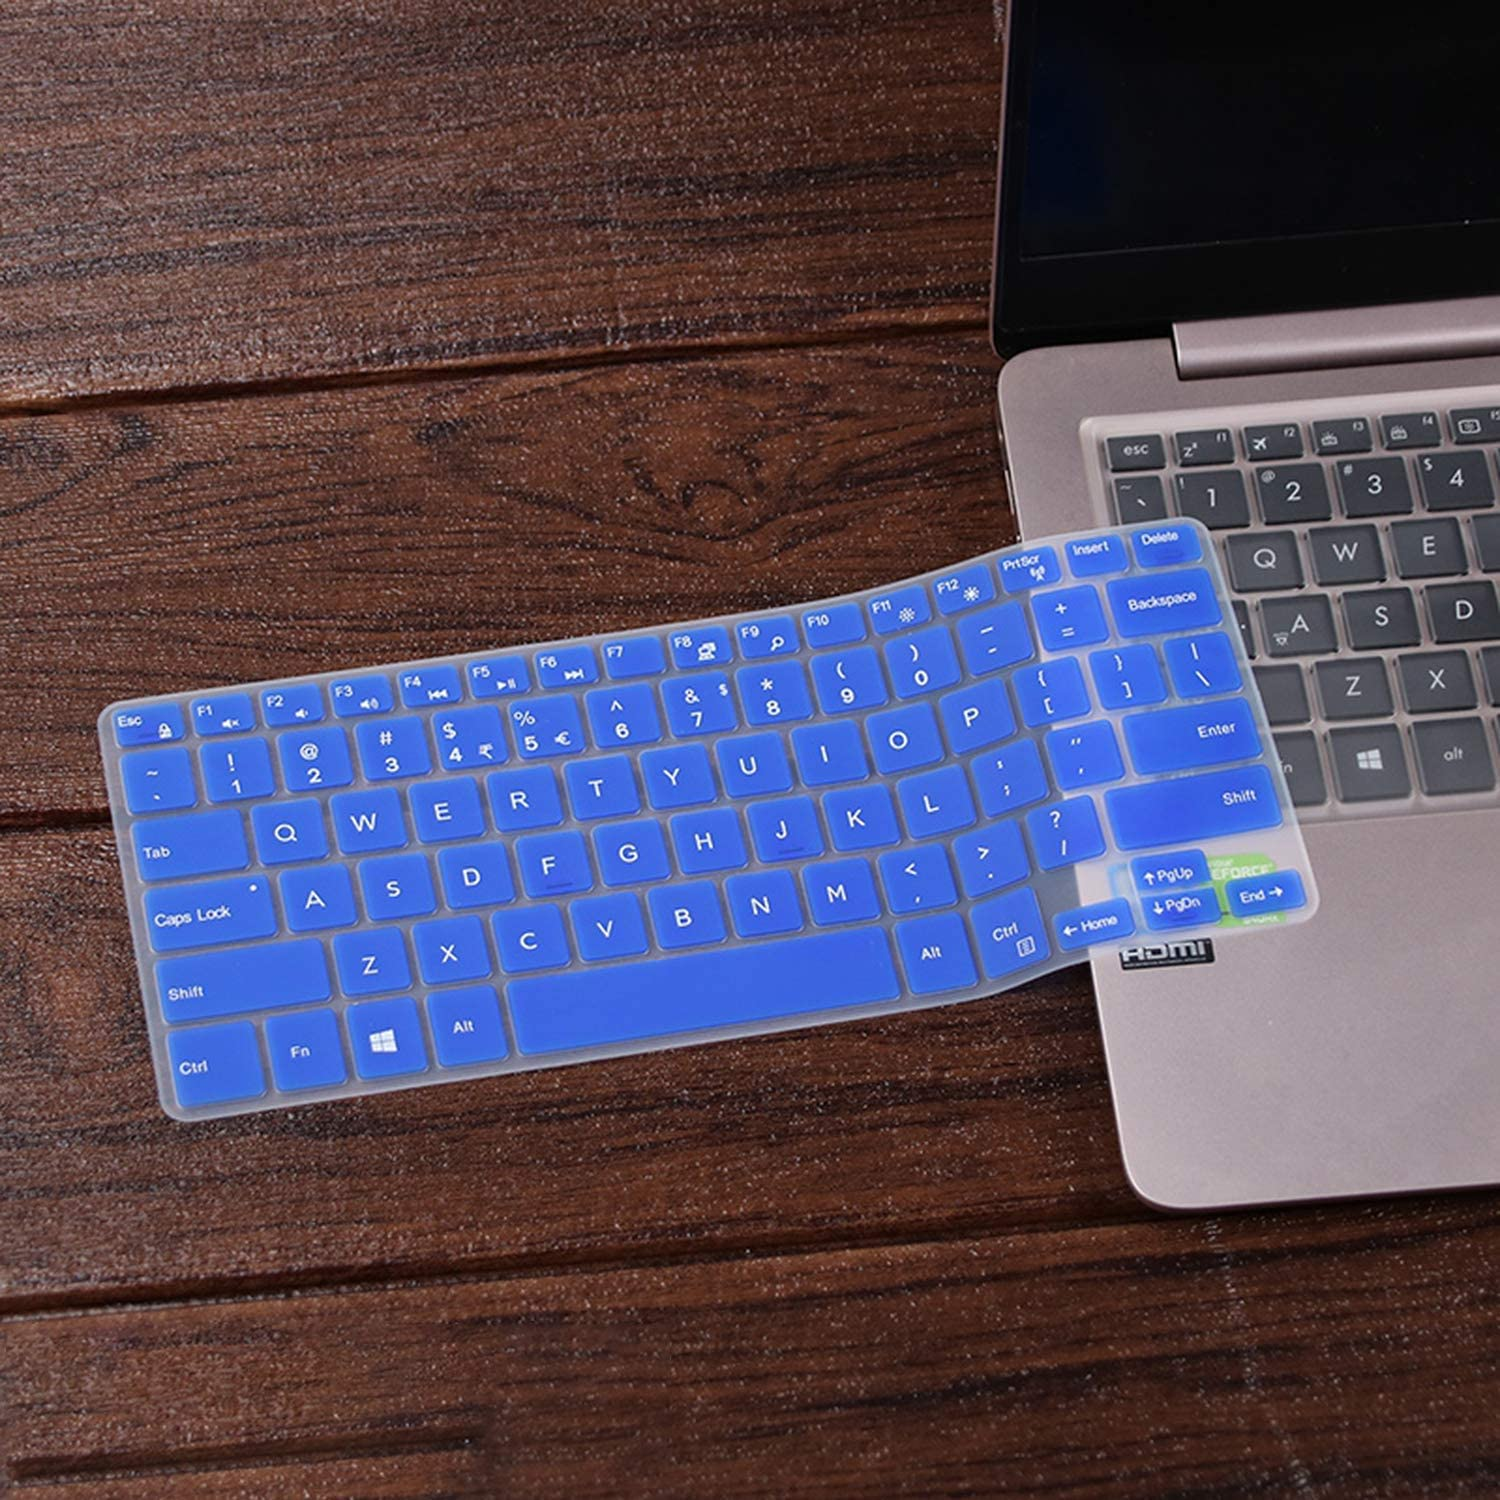 2020 11.6 Inch Silicone Keyboard Film Cover Skin Protector for Dell Inspiron 11 3162 11 3168 11 3169 3162 3168 3169 11 Inch-Clear